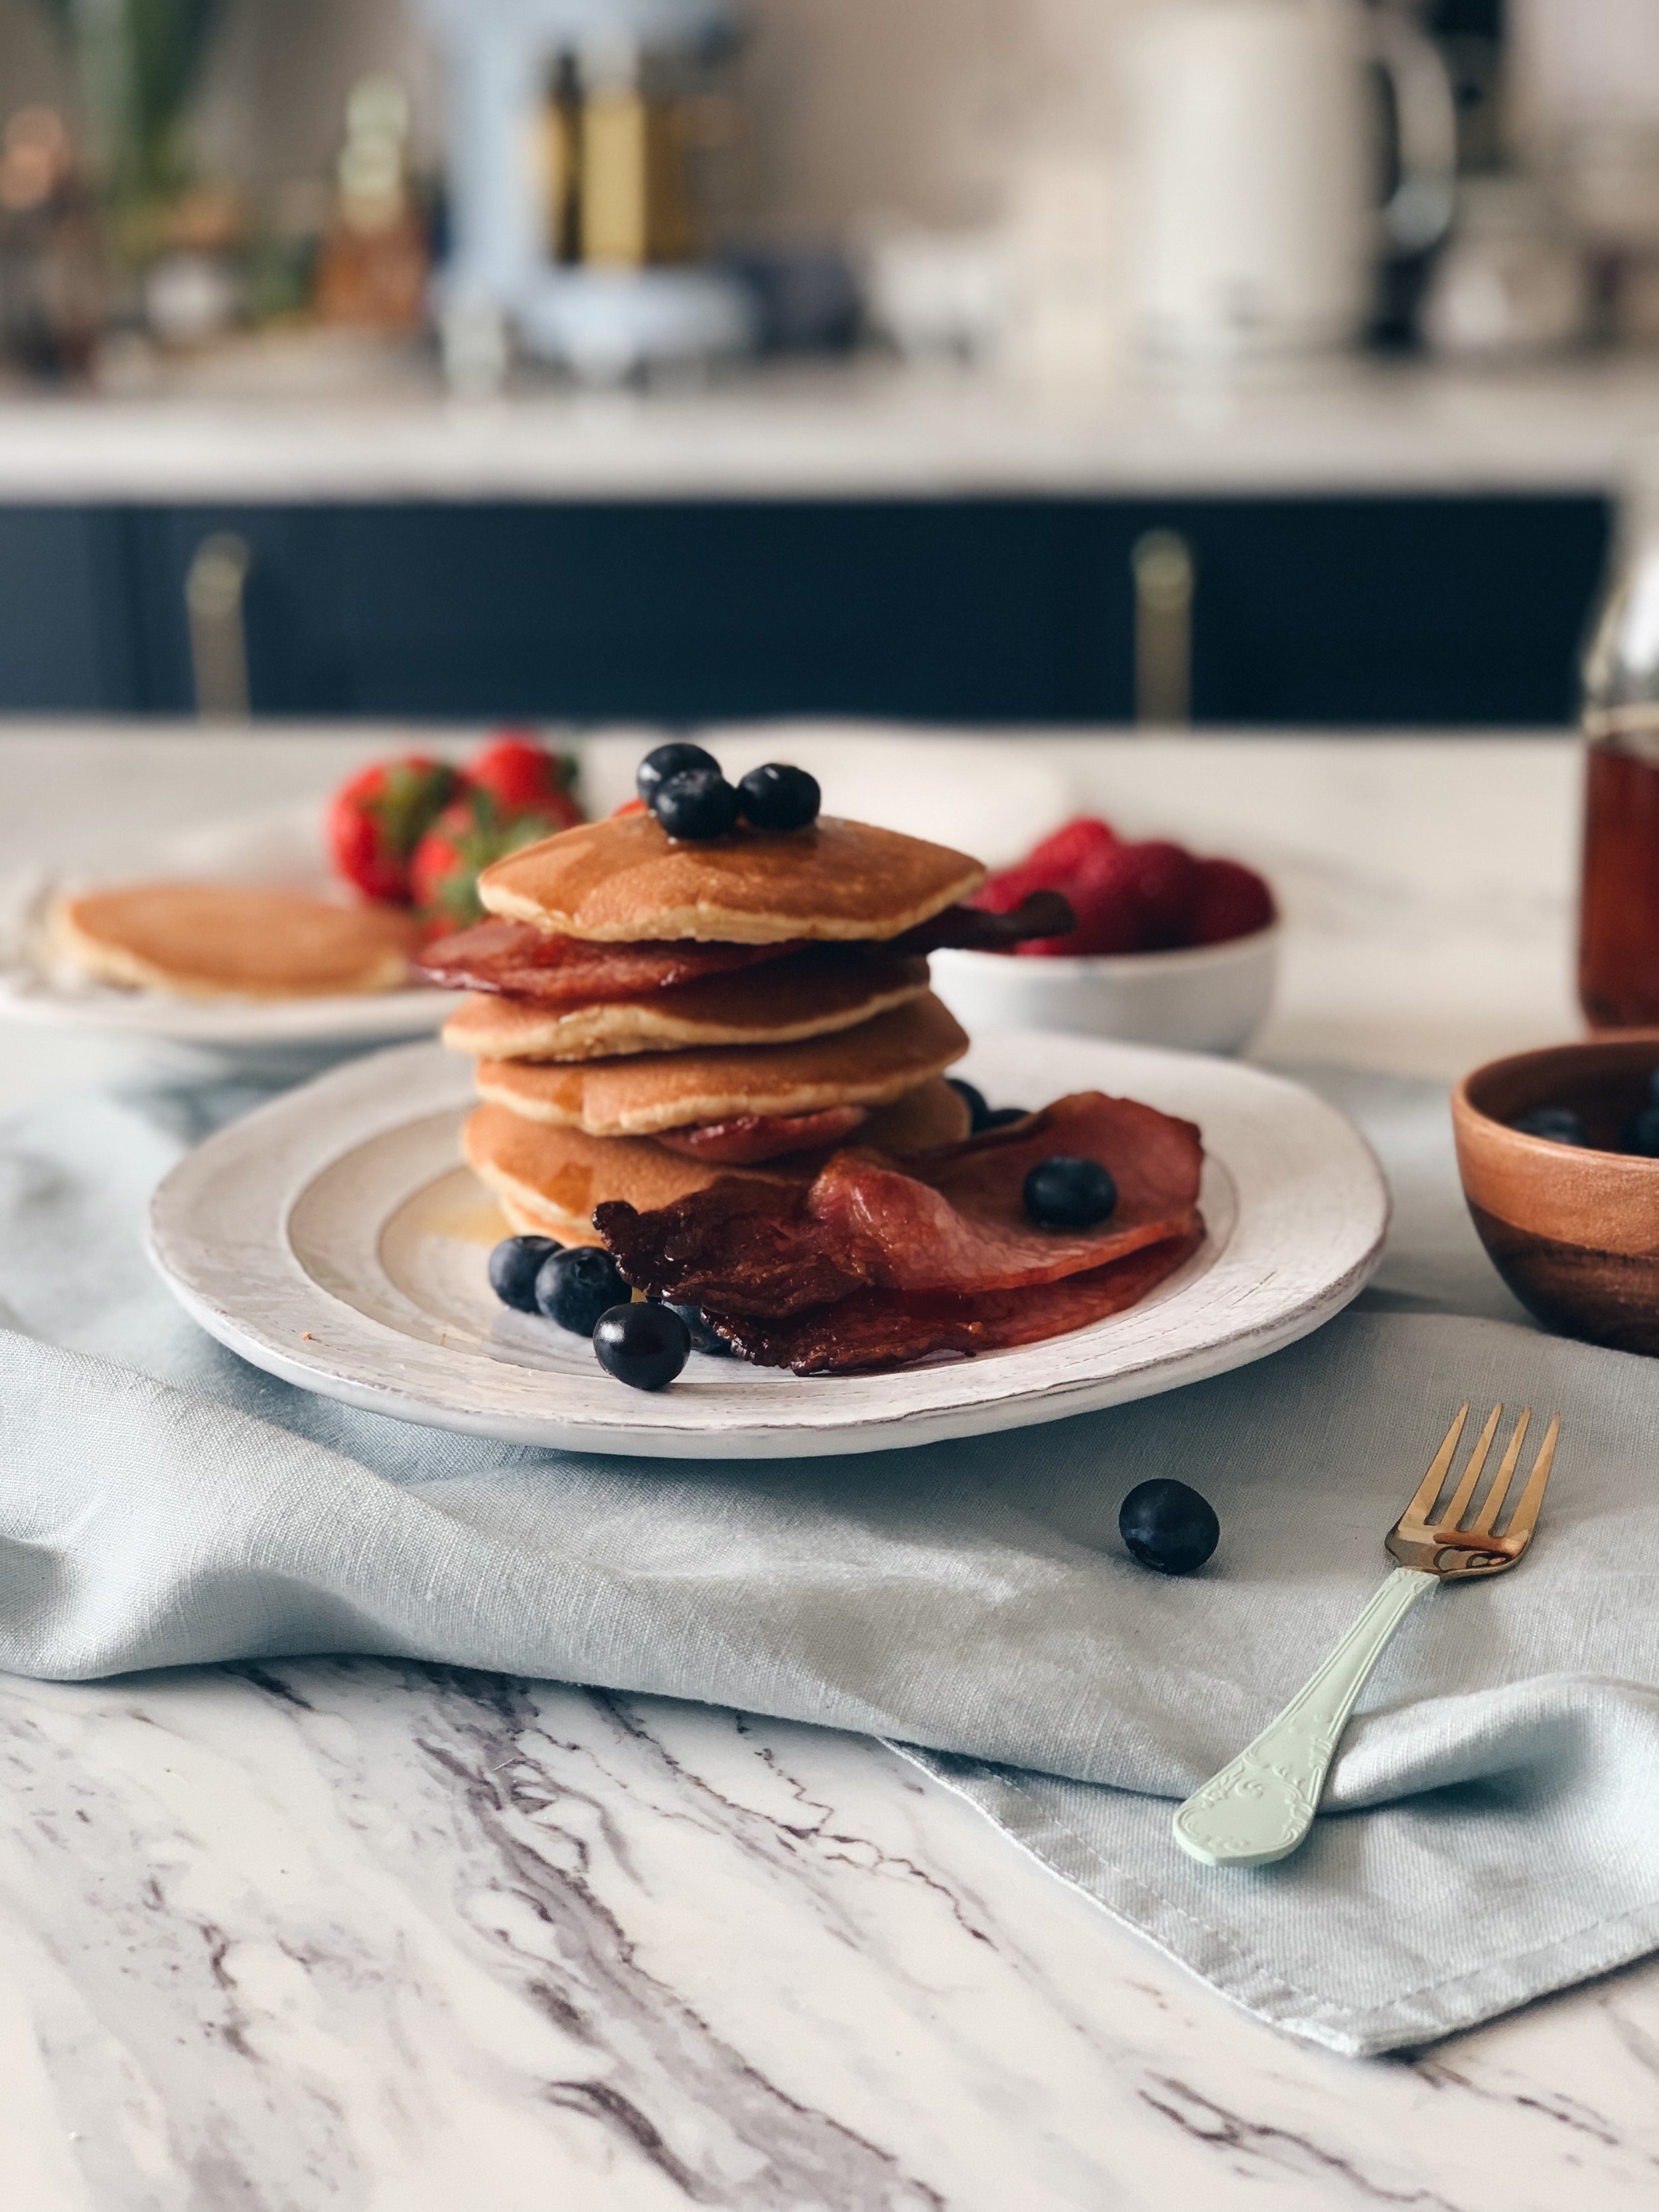 Bacon maple syrup pancakes, Denhay